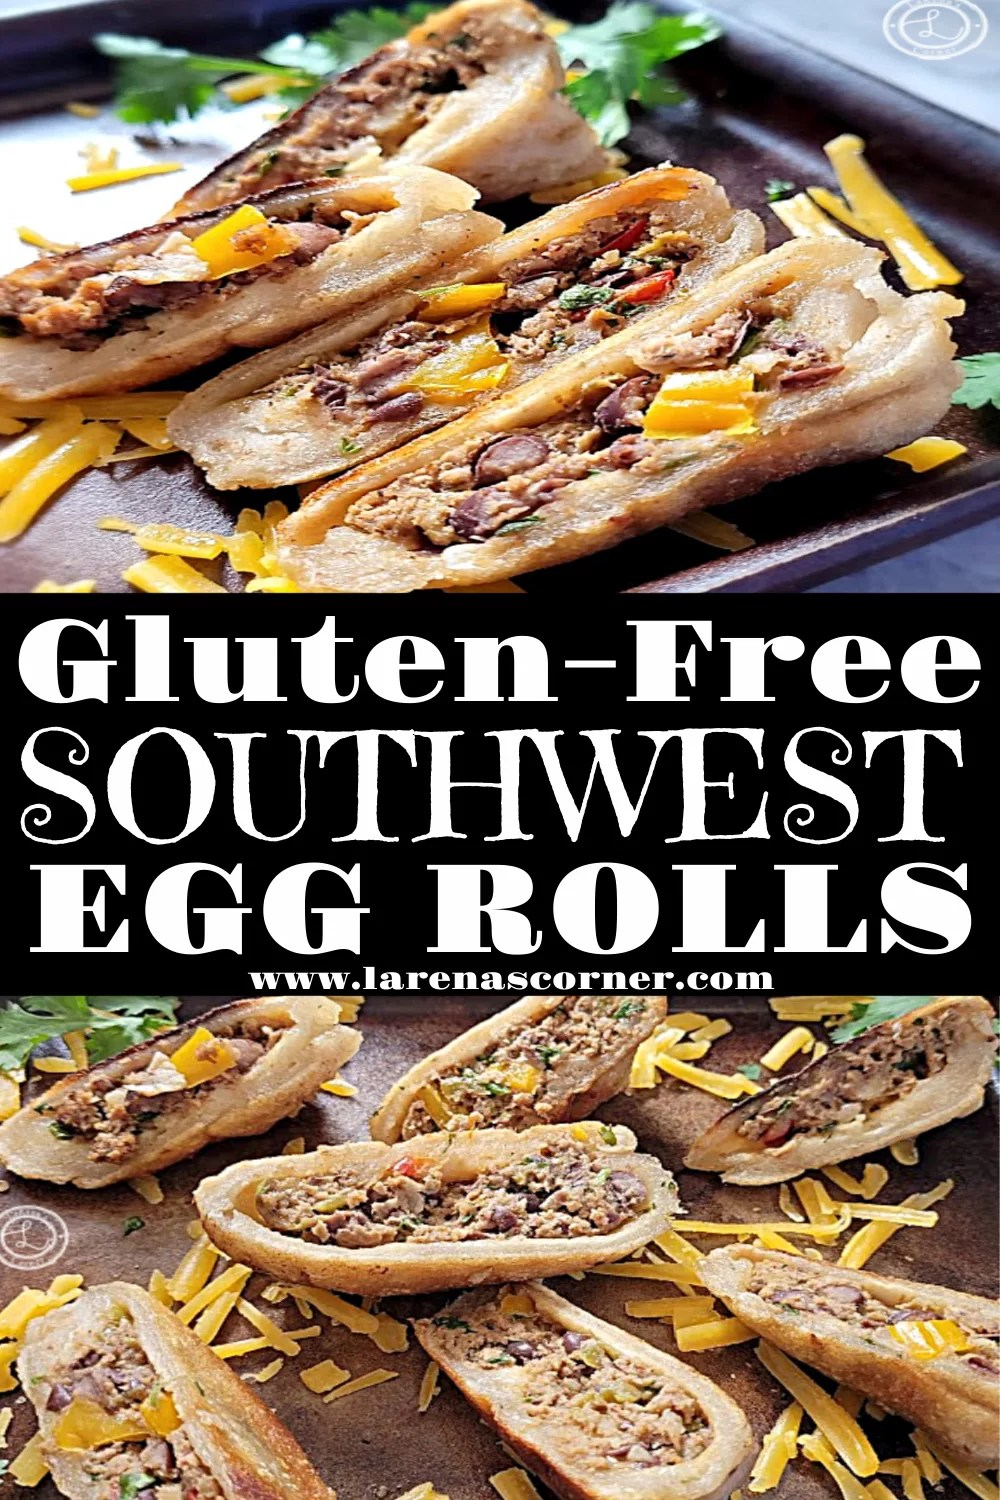 Gluten-Free Southwest Egg Rolls 2 pictures of egg rolls on a stone baking sheet.